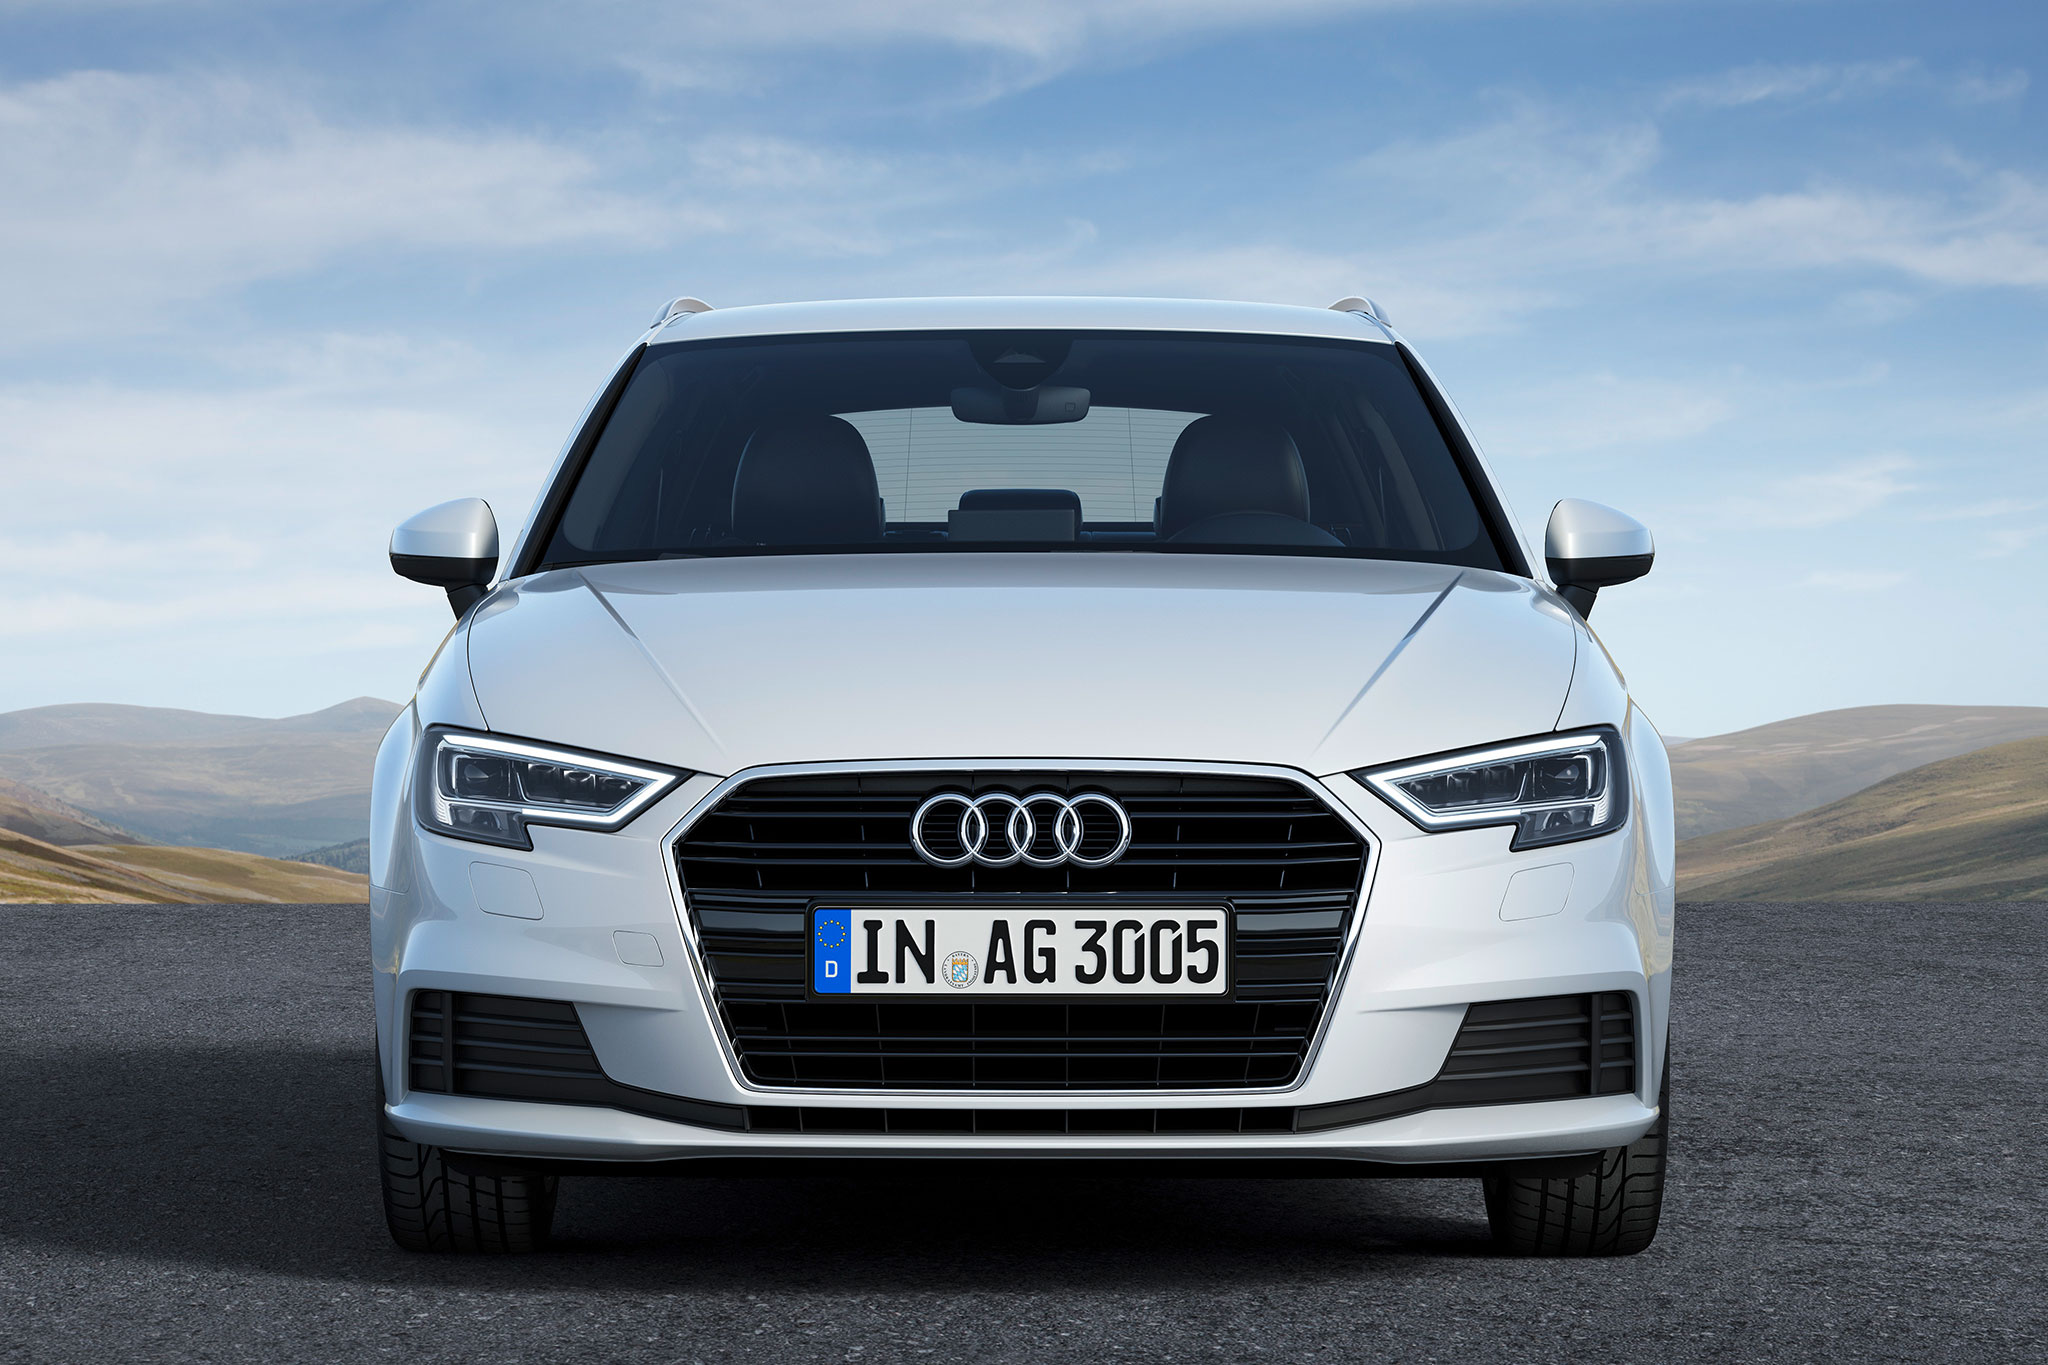 HQ Audi A3 Wallpapers | File 376.61Kb